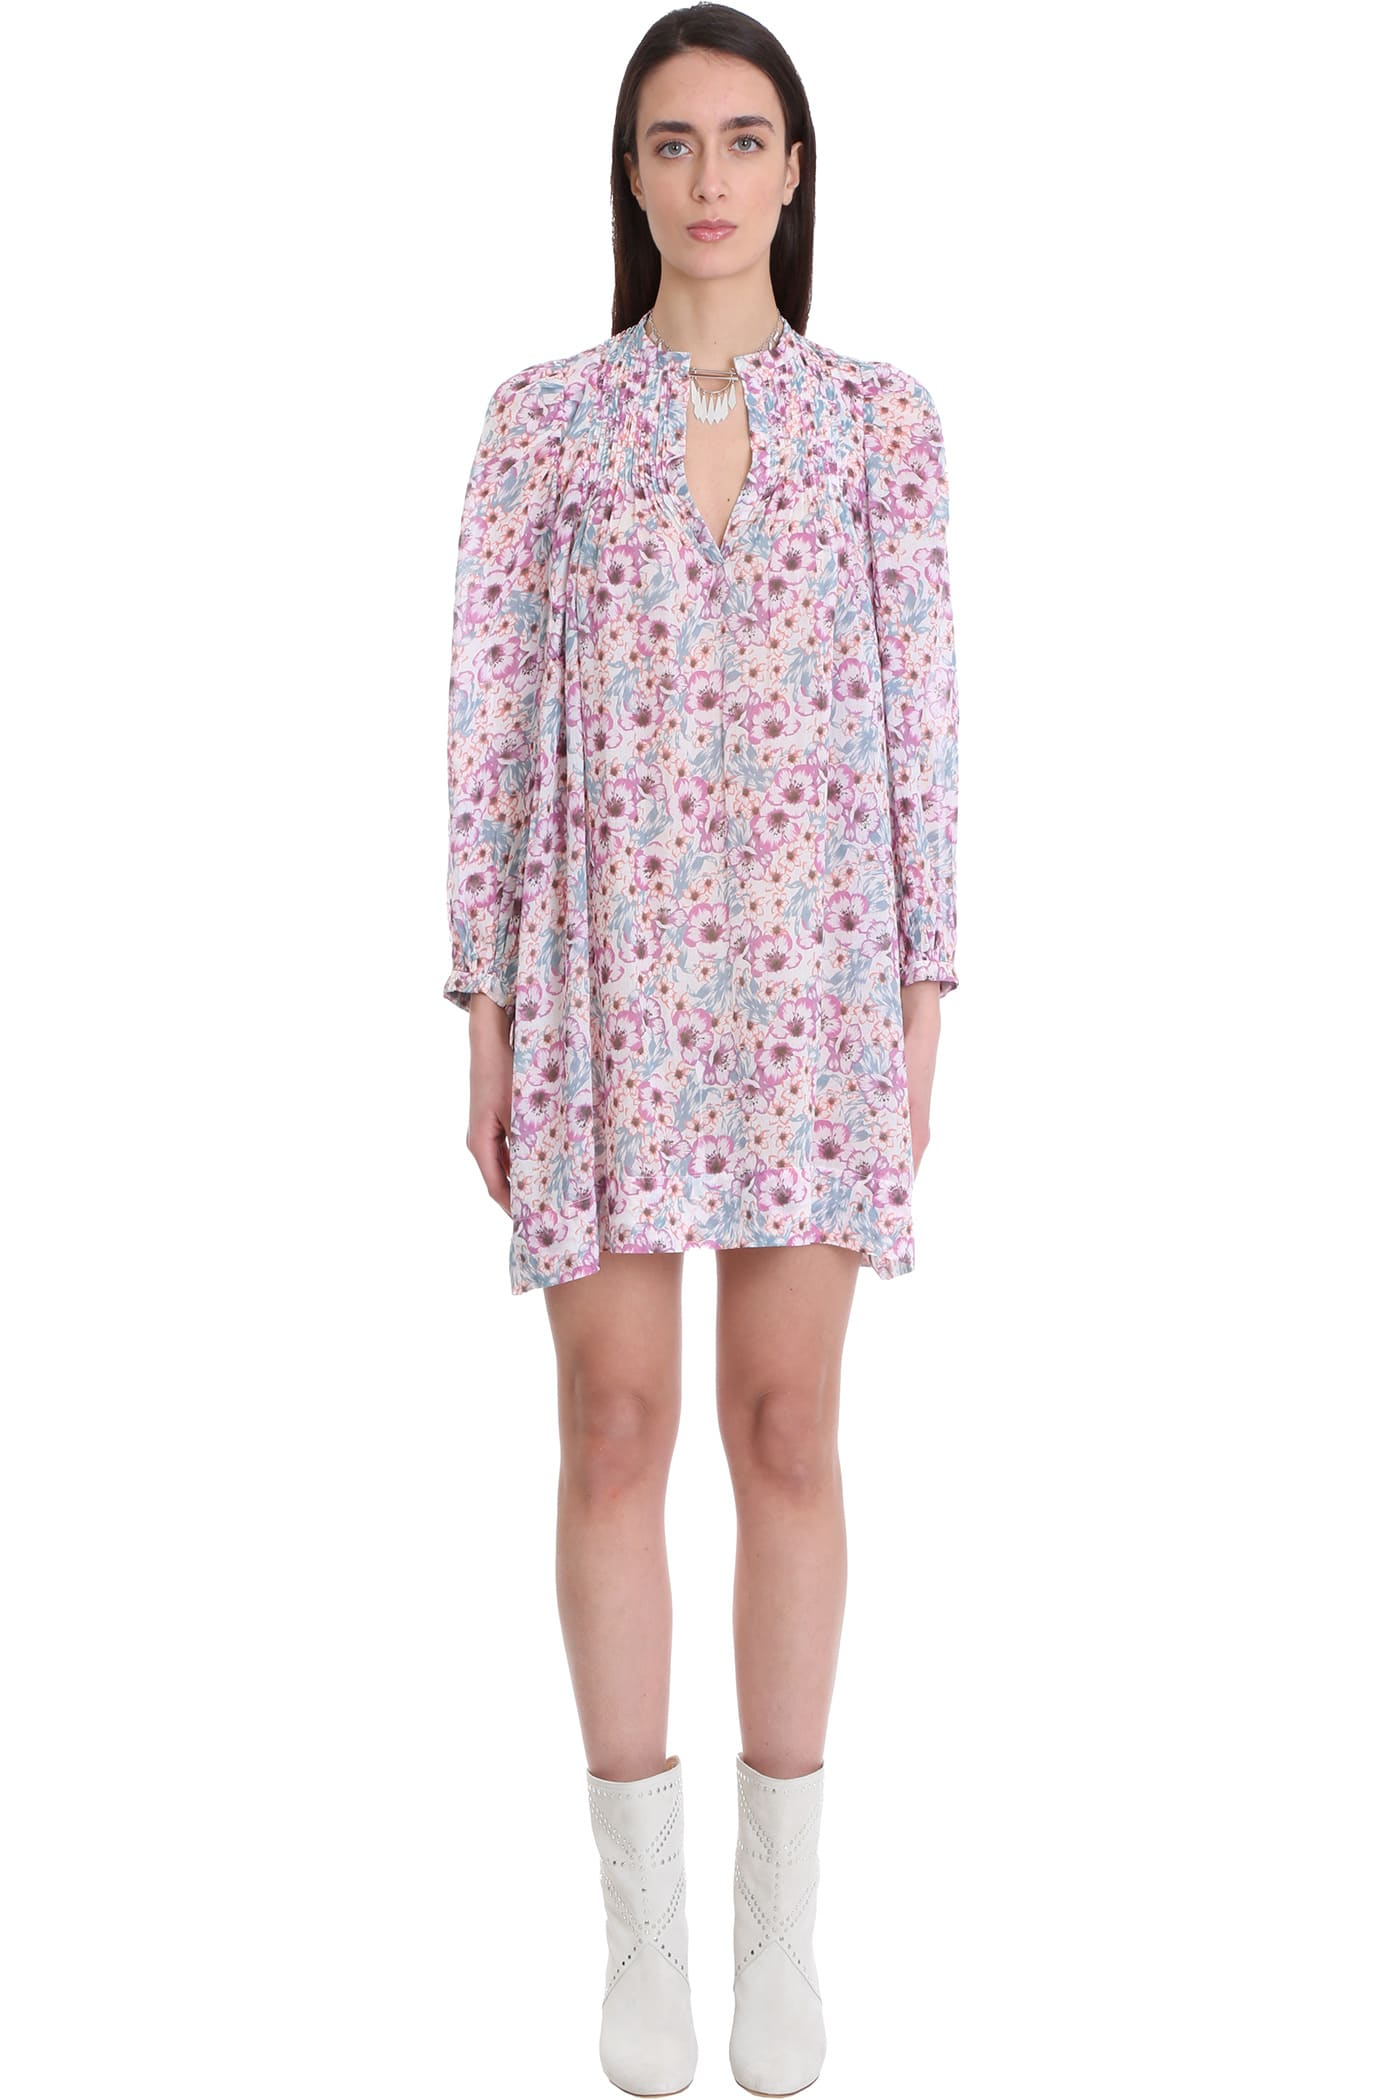 Isabel Marant Étoile DRESS IN ROSE-PINK COTTON